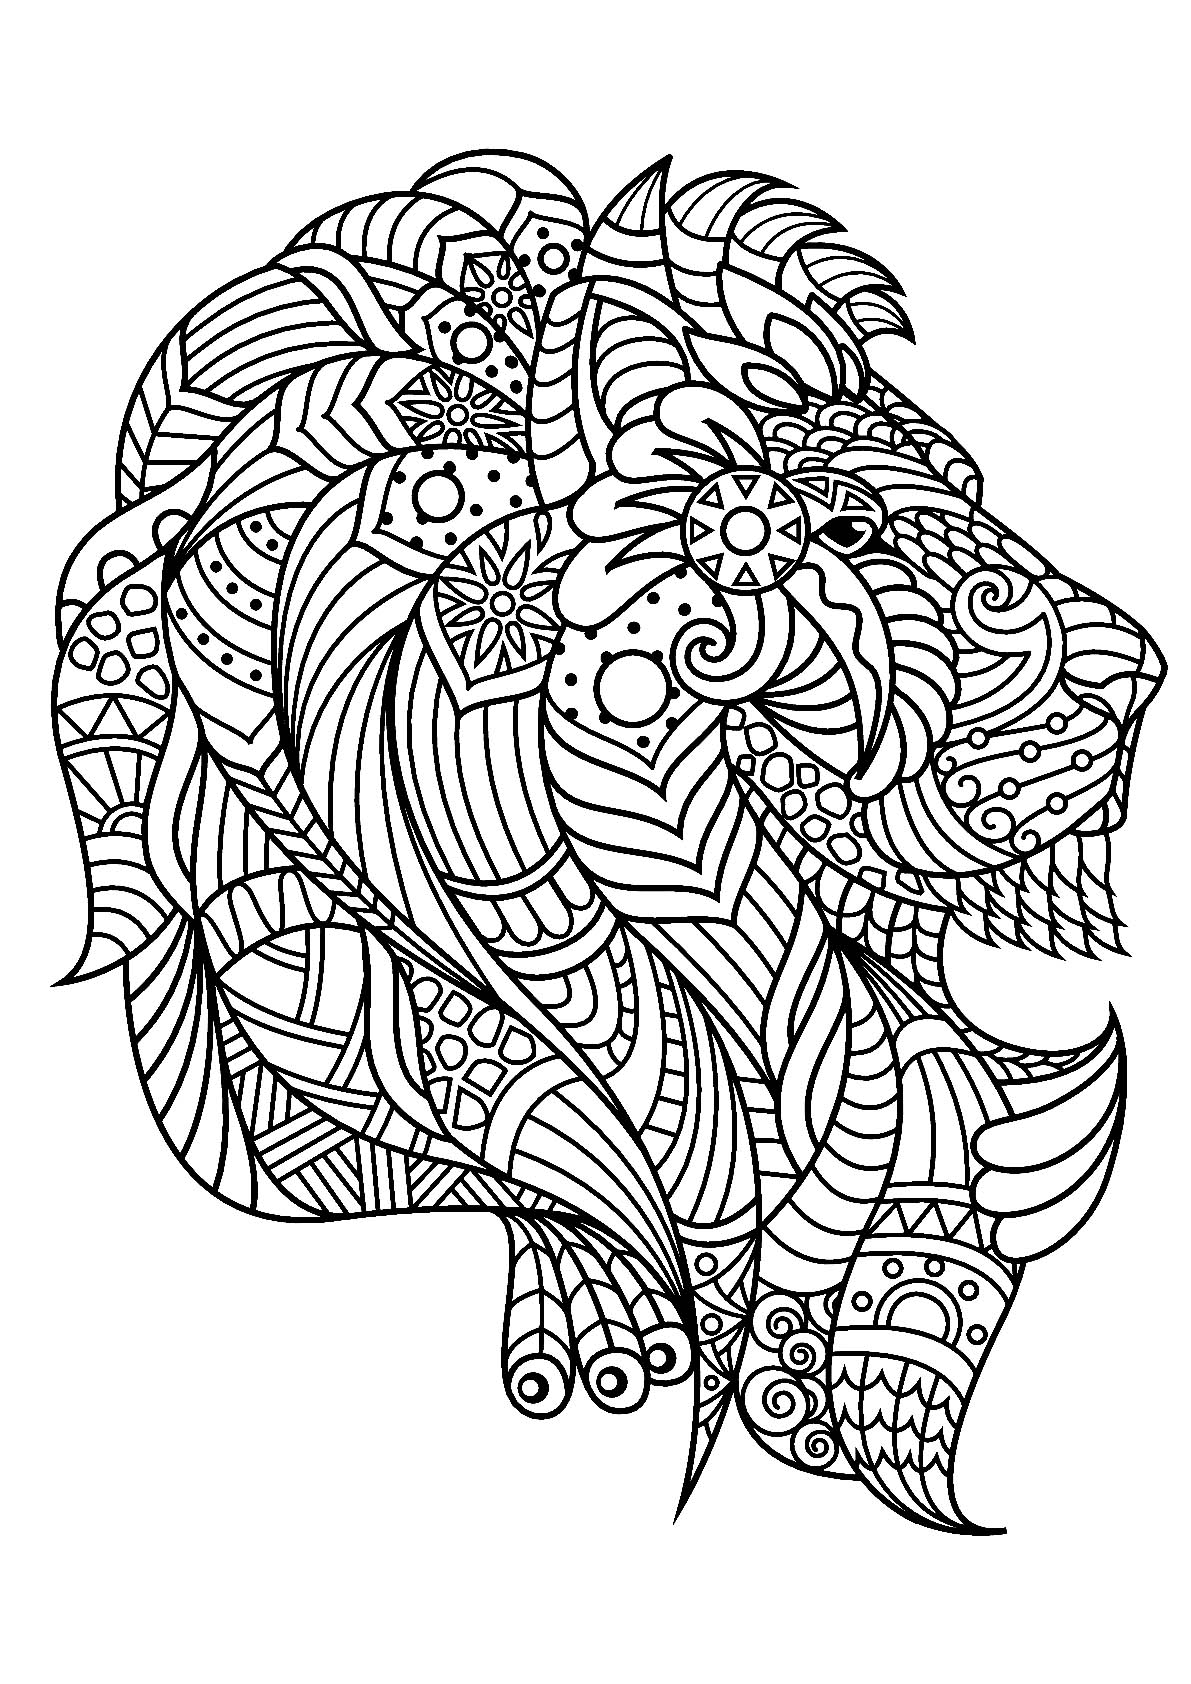 lion coloring image lion coloring pages to download and print for free lion image coloring